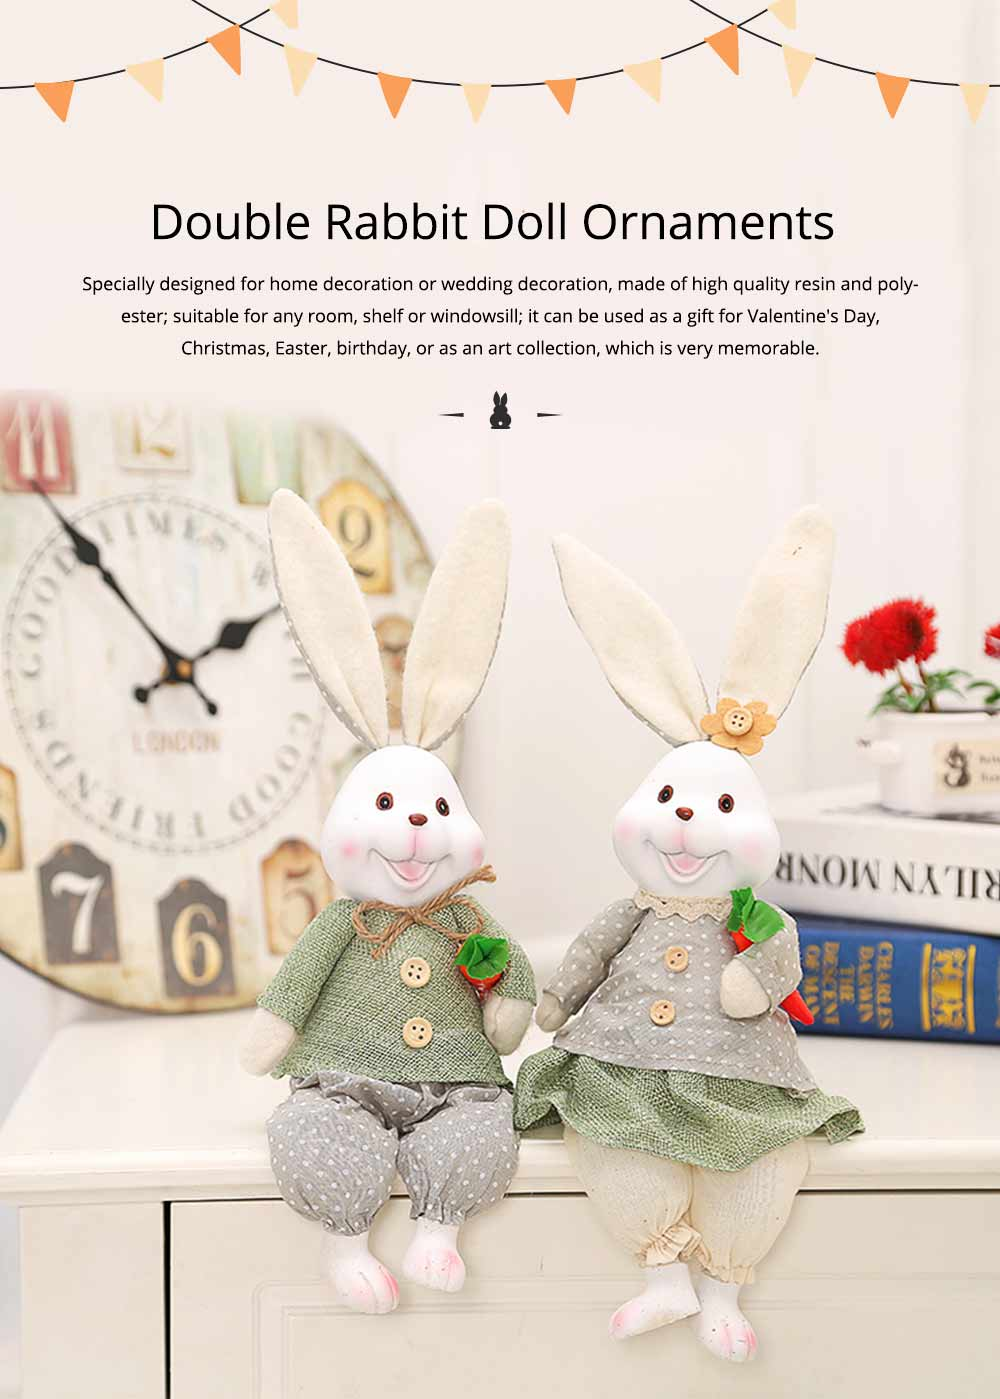 Resin Rabbit Doll Ornaments, Easter Bunny Ornaments Creative Gift for Birthday Wedding Household Decoration 0